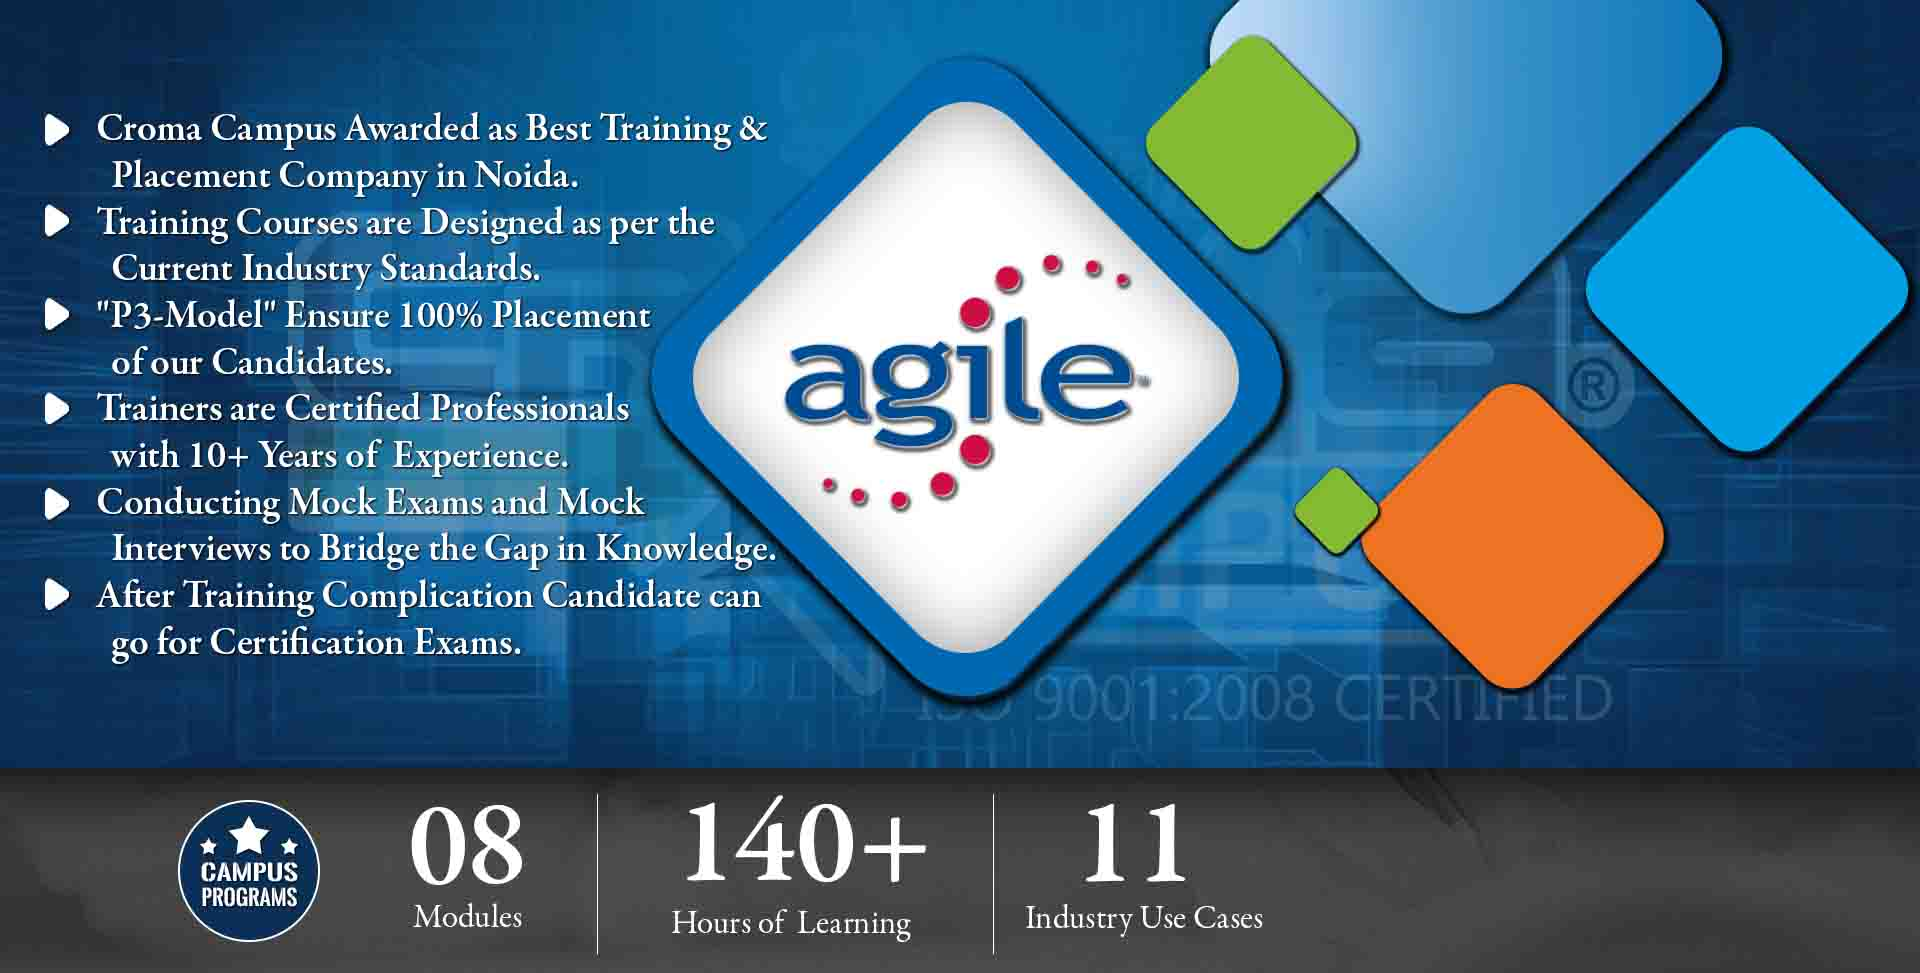 Agile Training in Noida- Croma Campus